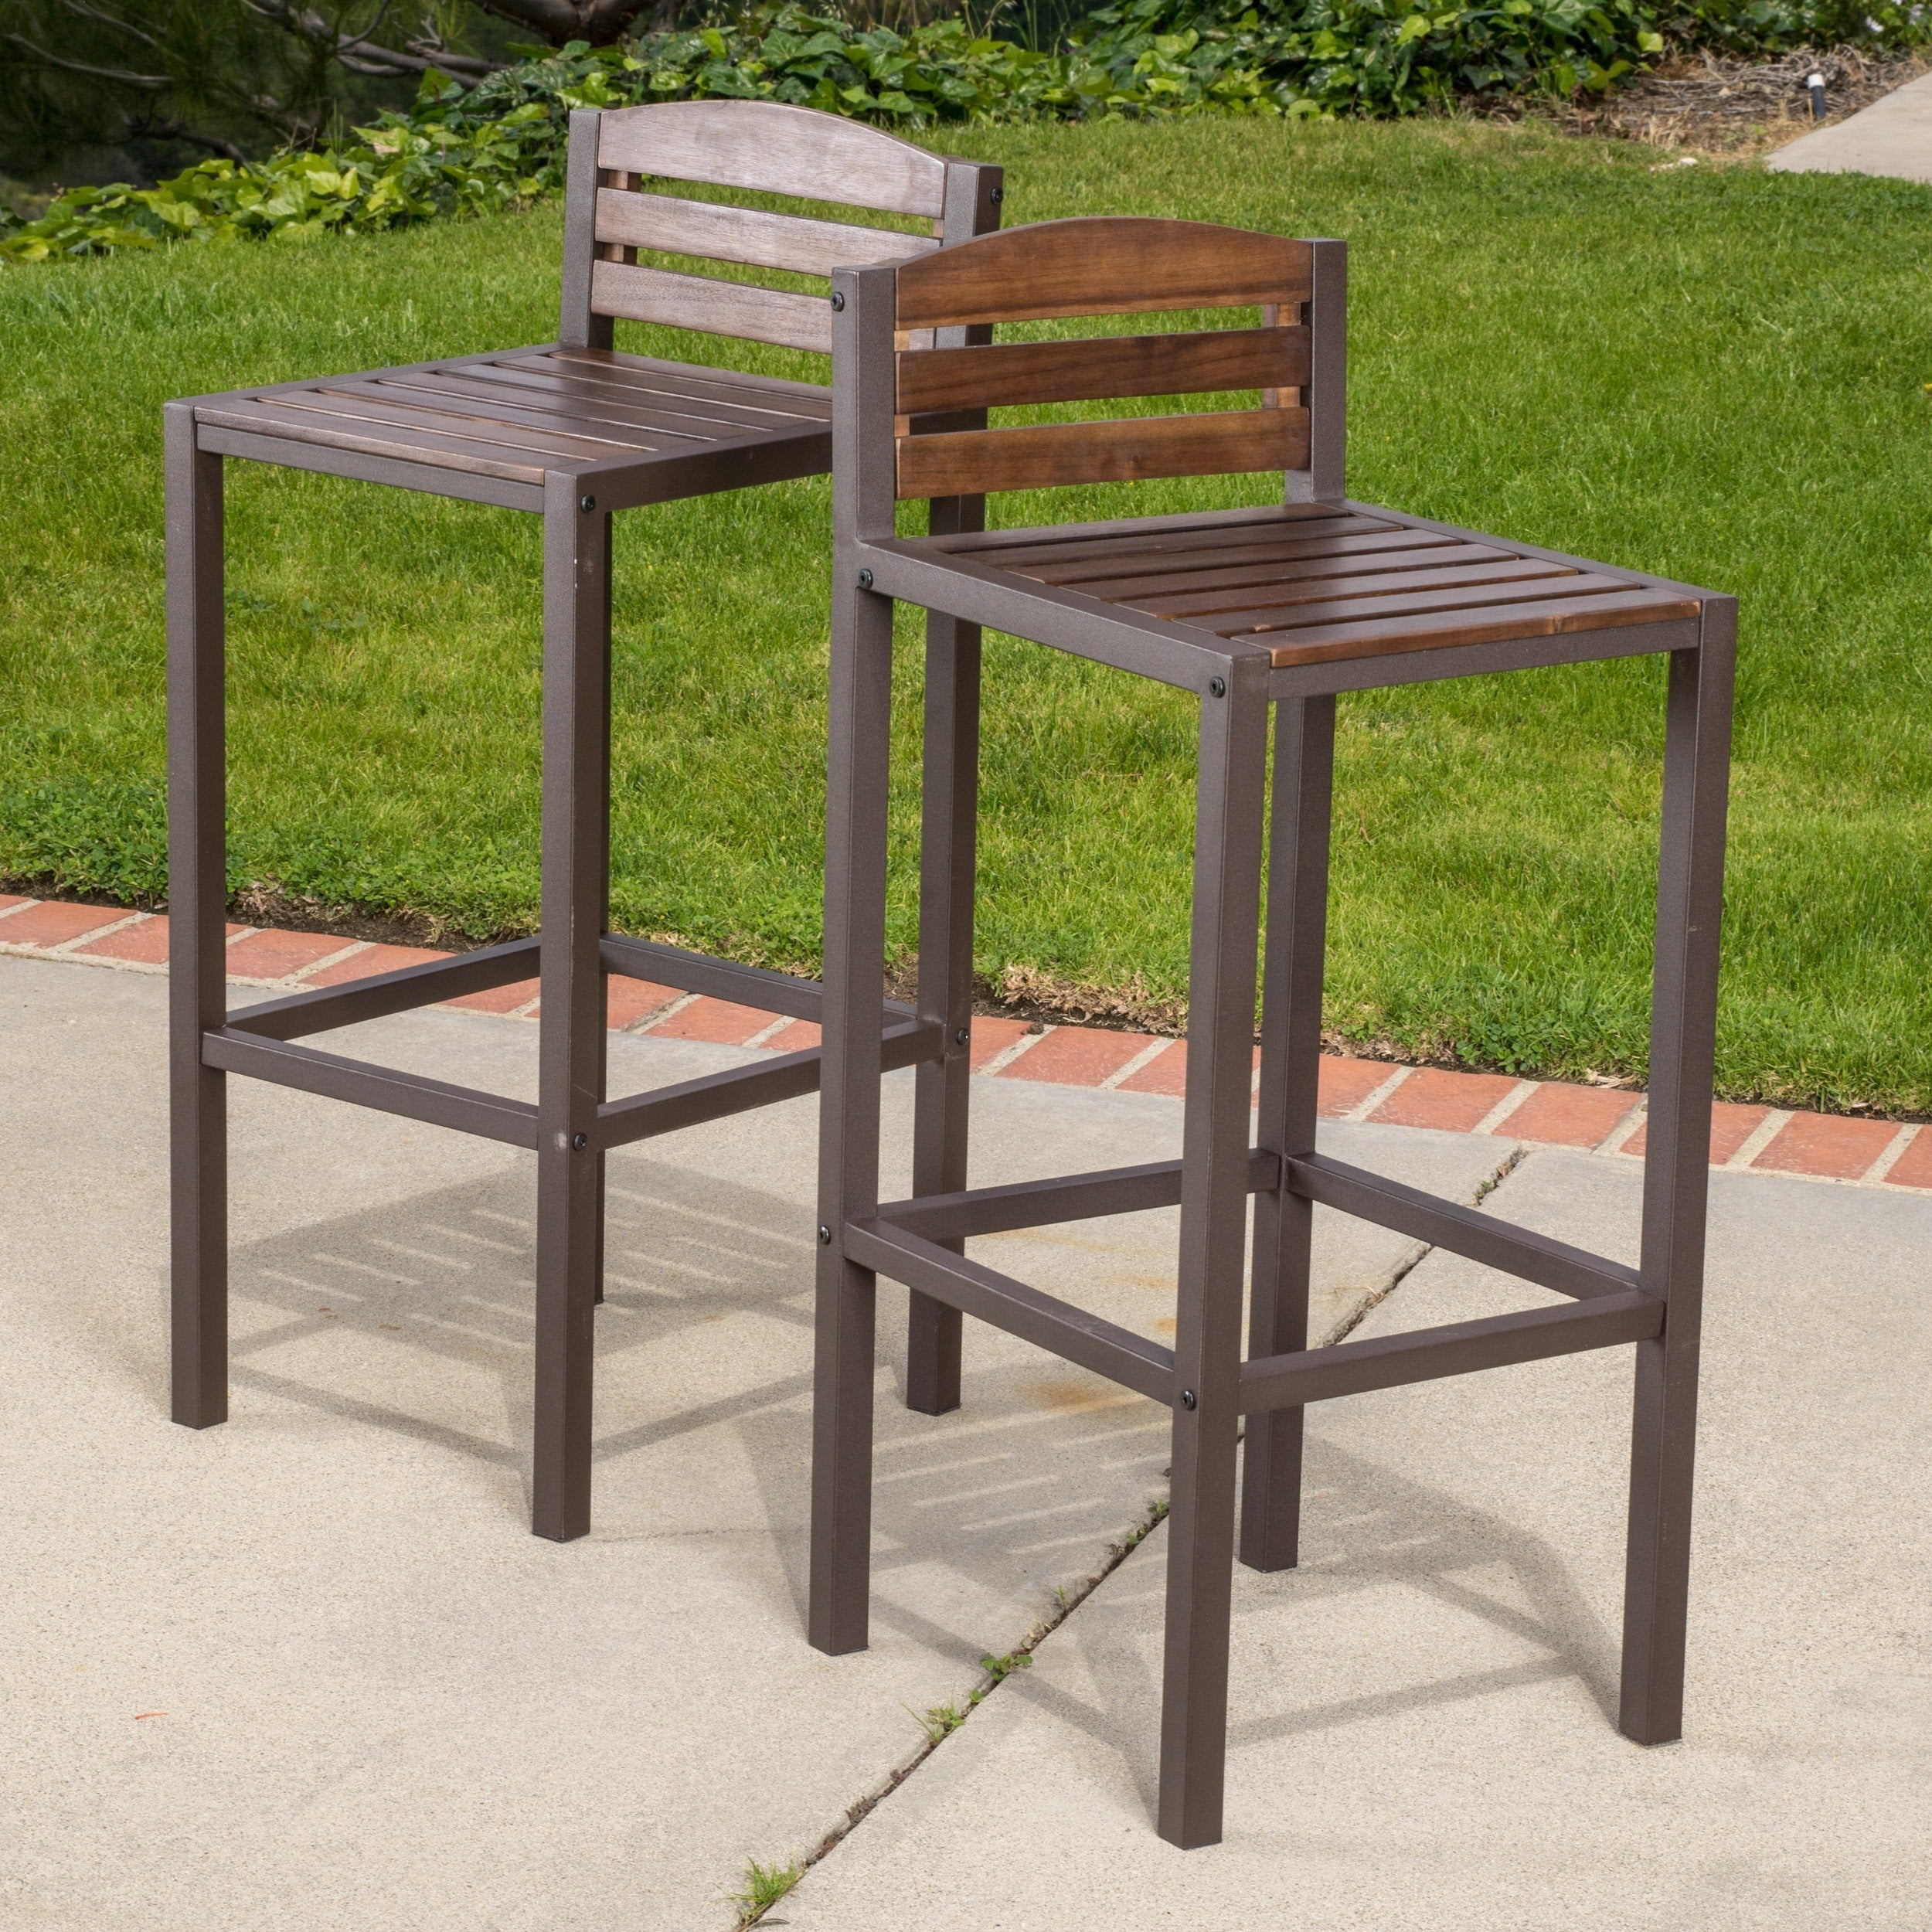 Metal And Wood Outdoor Furniture low back patio furniture - shop the best outdoor seating & dining